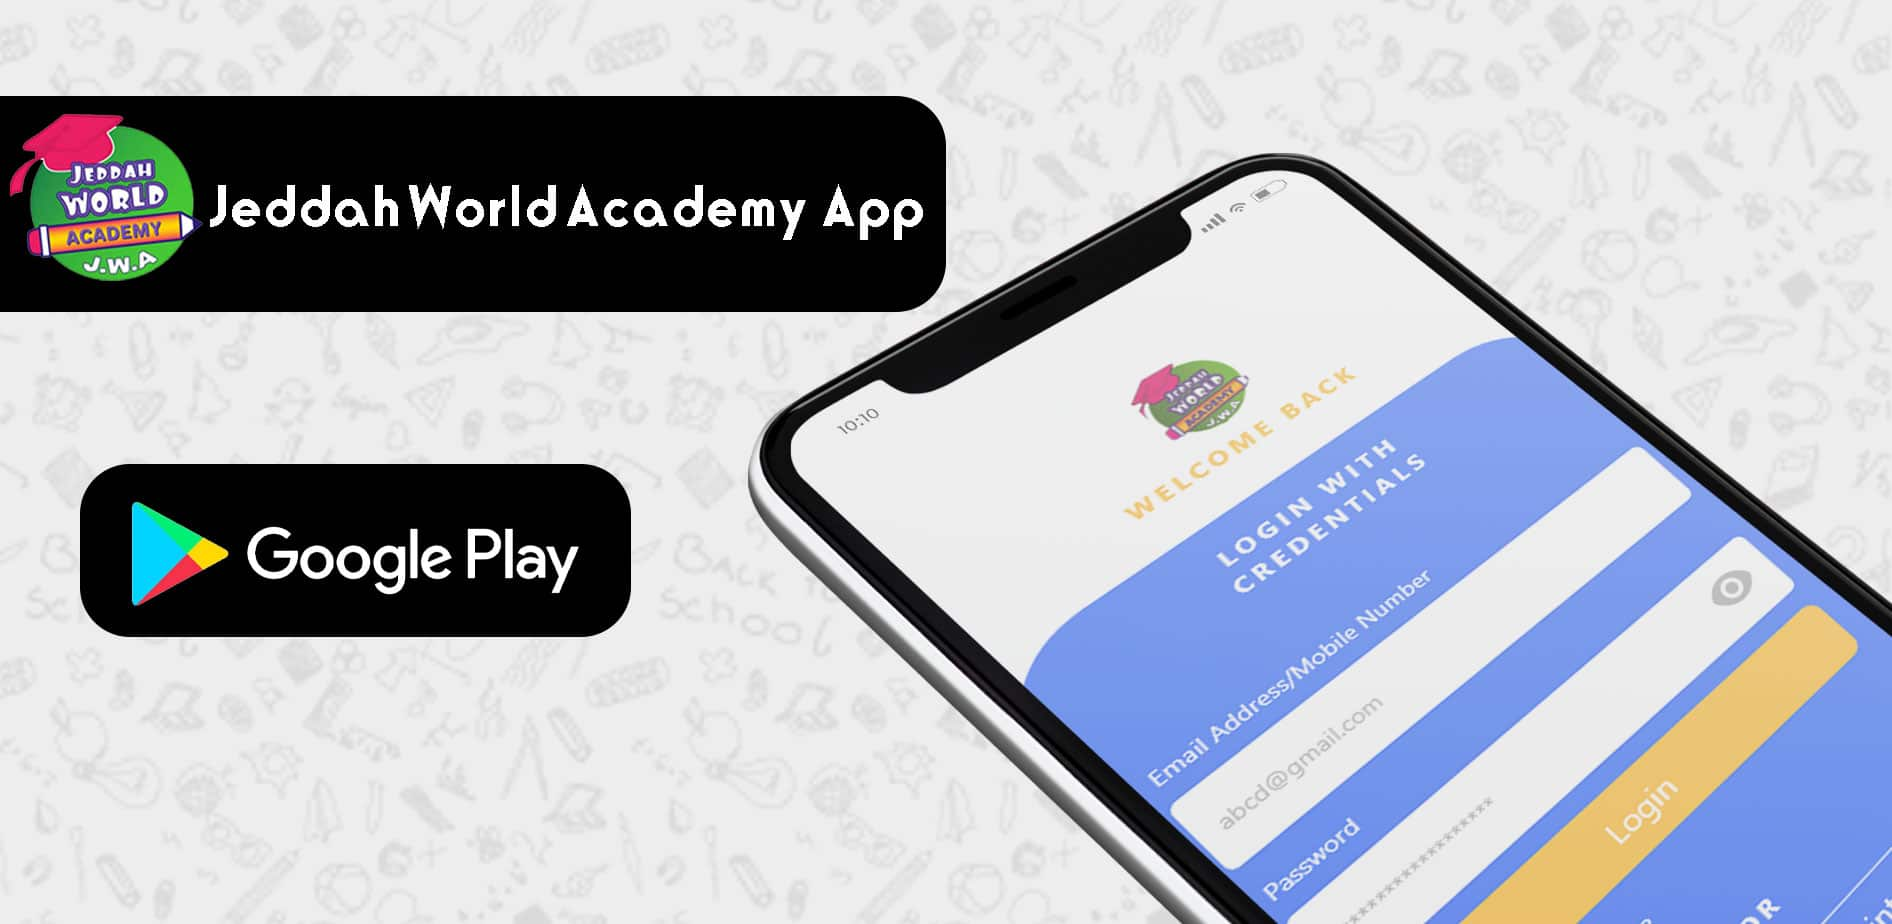 Jeddah World Academy App